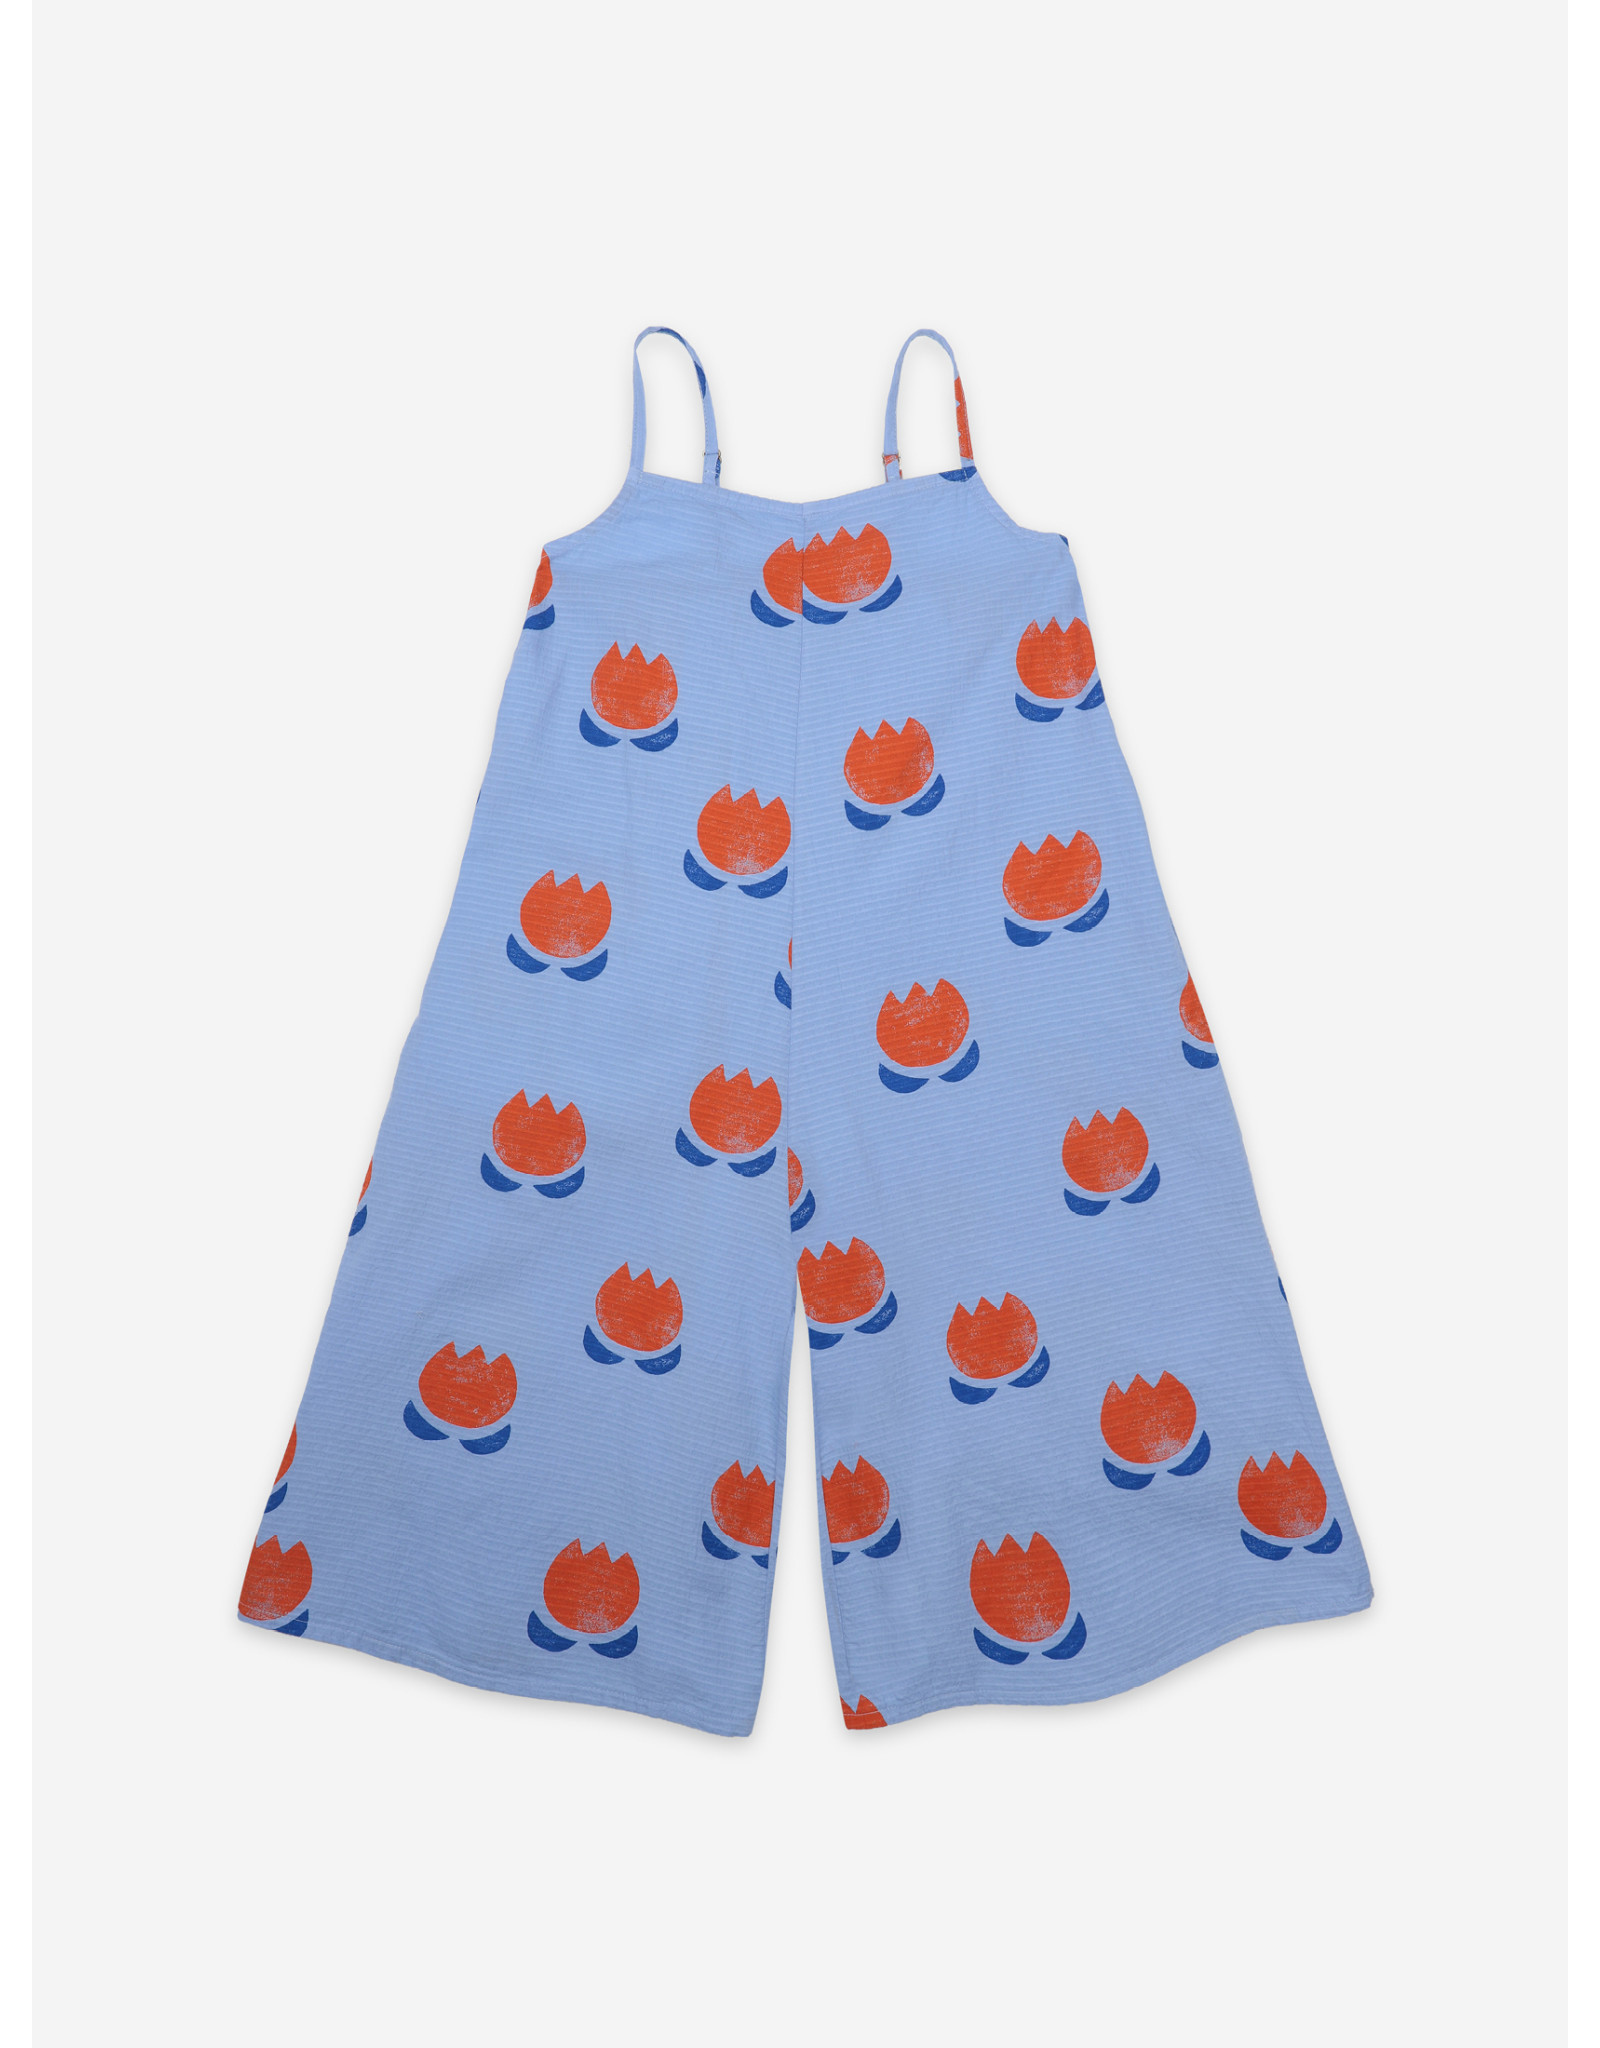 Bobo Choses Bobo Choses Chocolate Flowers All Over Woven Overall